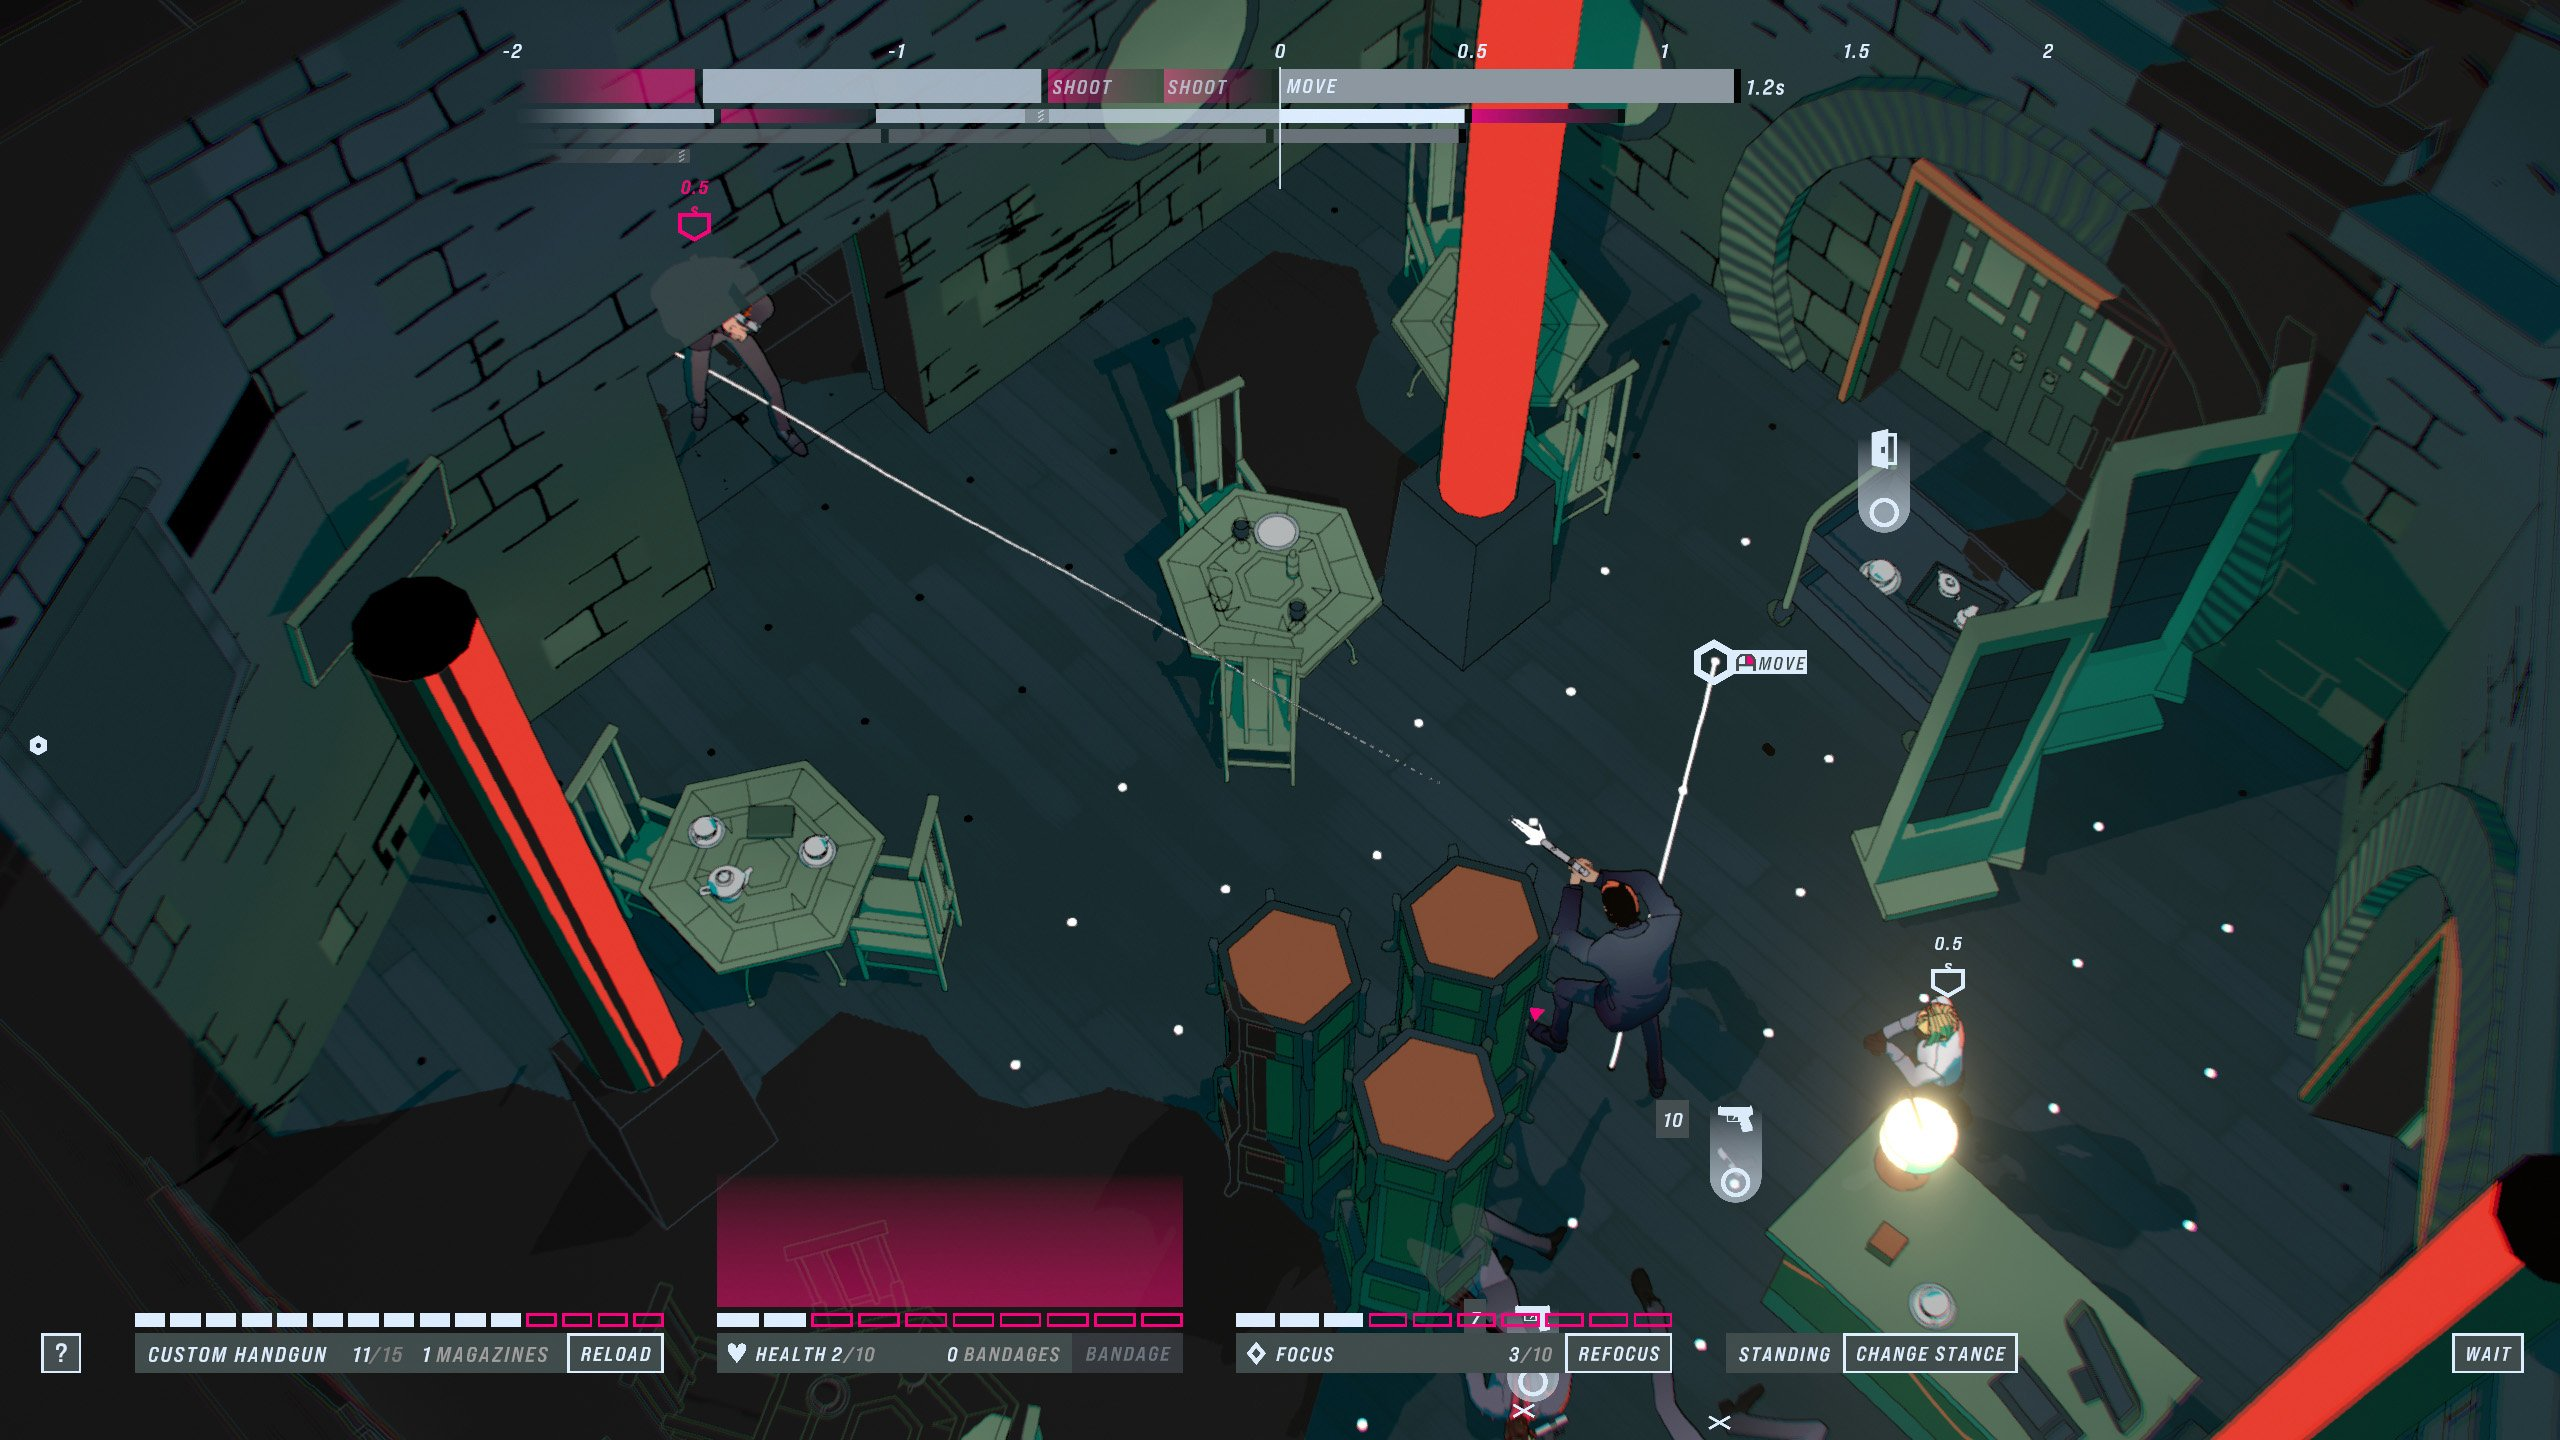 John Wick Hex review - gameplay